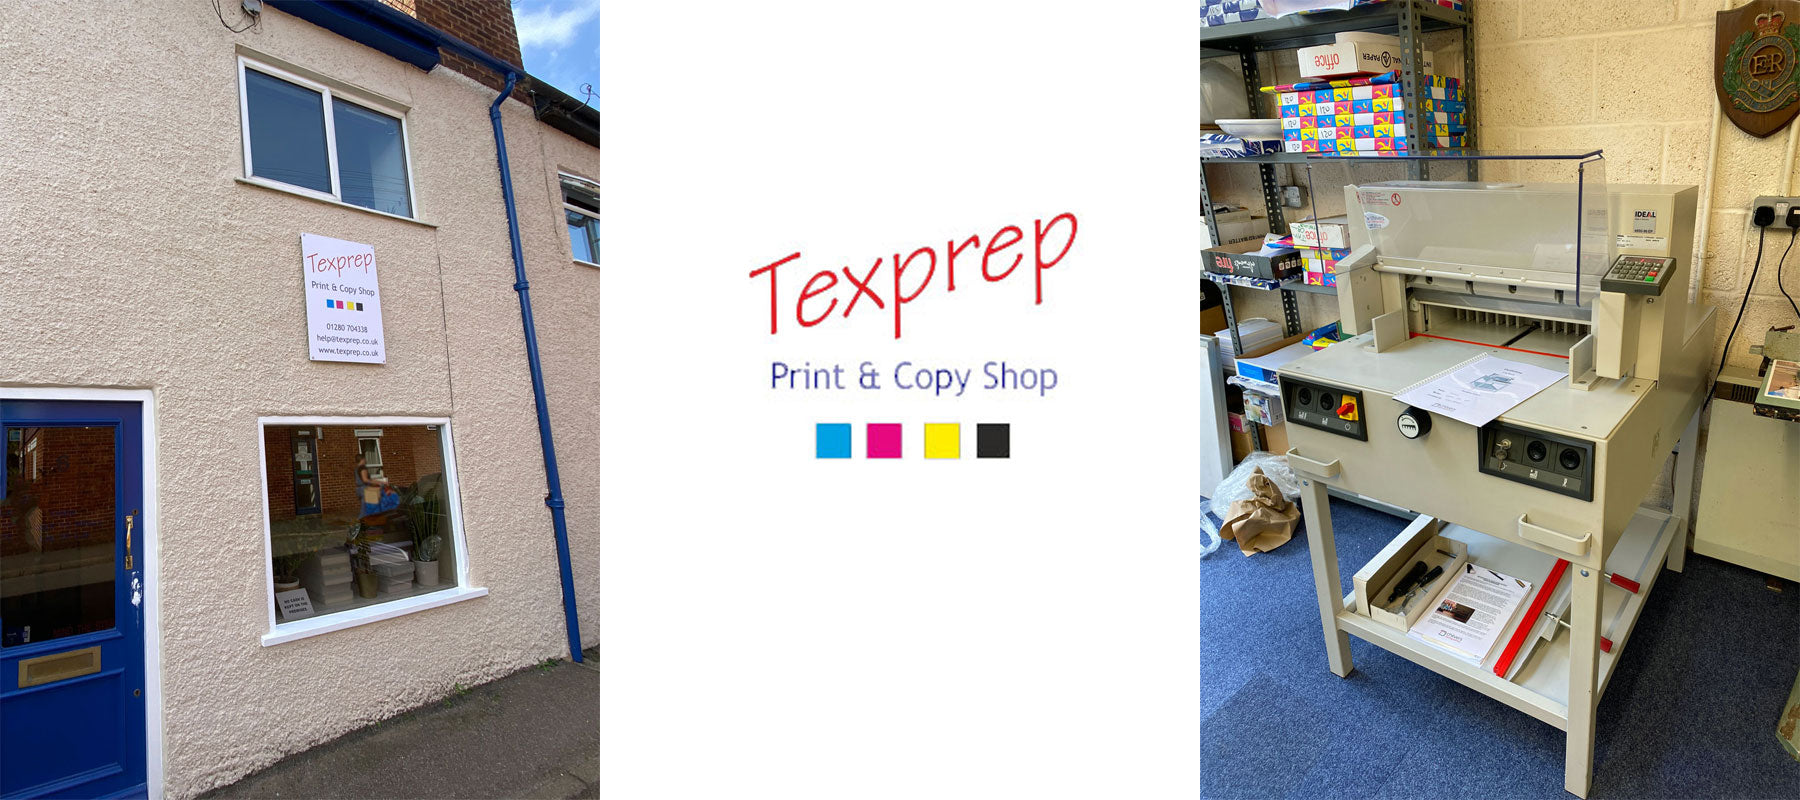 Texprep, Print & Copy shop